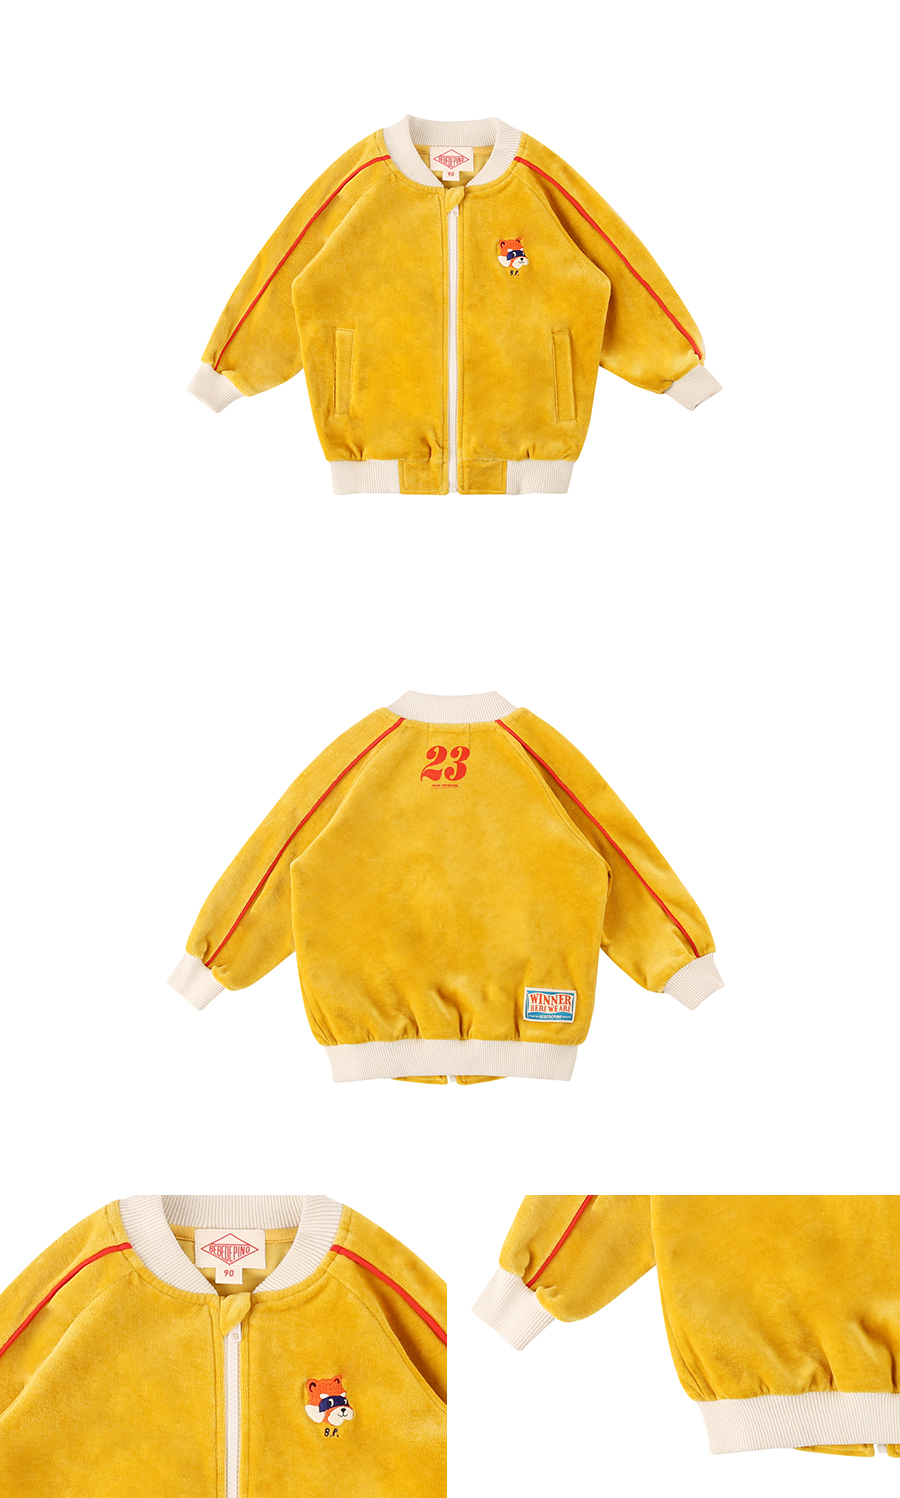 Lesser panda baby velour zip up jacket 상세 이미지